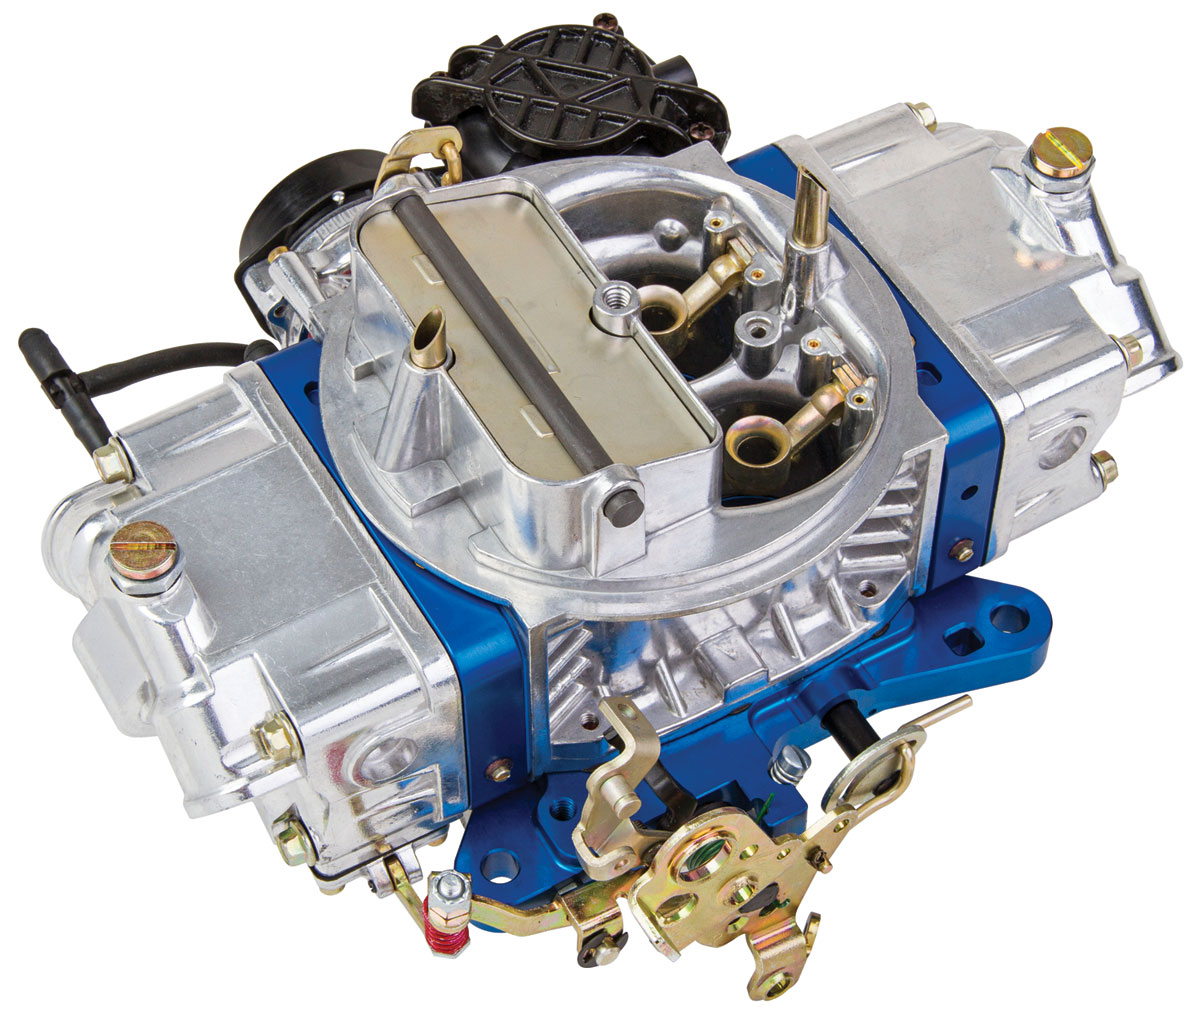 Carburetor, Holley, 870 CFM Ultra Street Avenger, Blue Metering Blocks